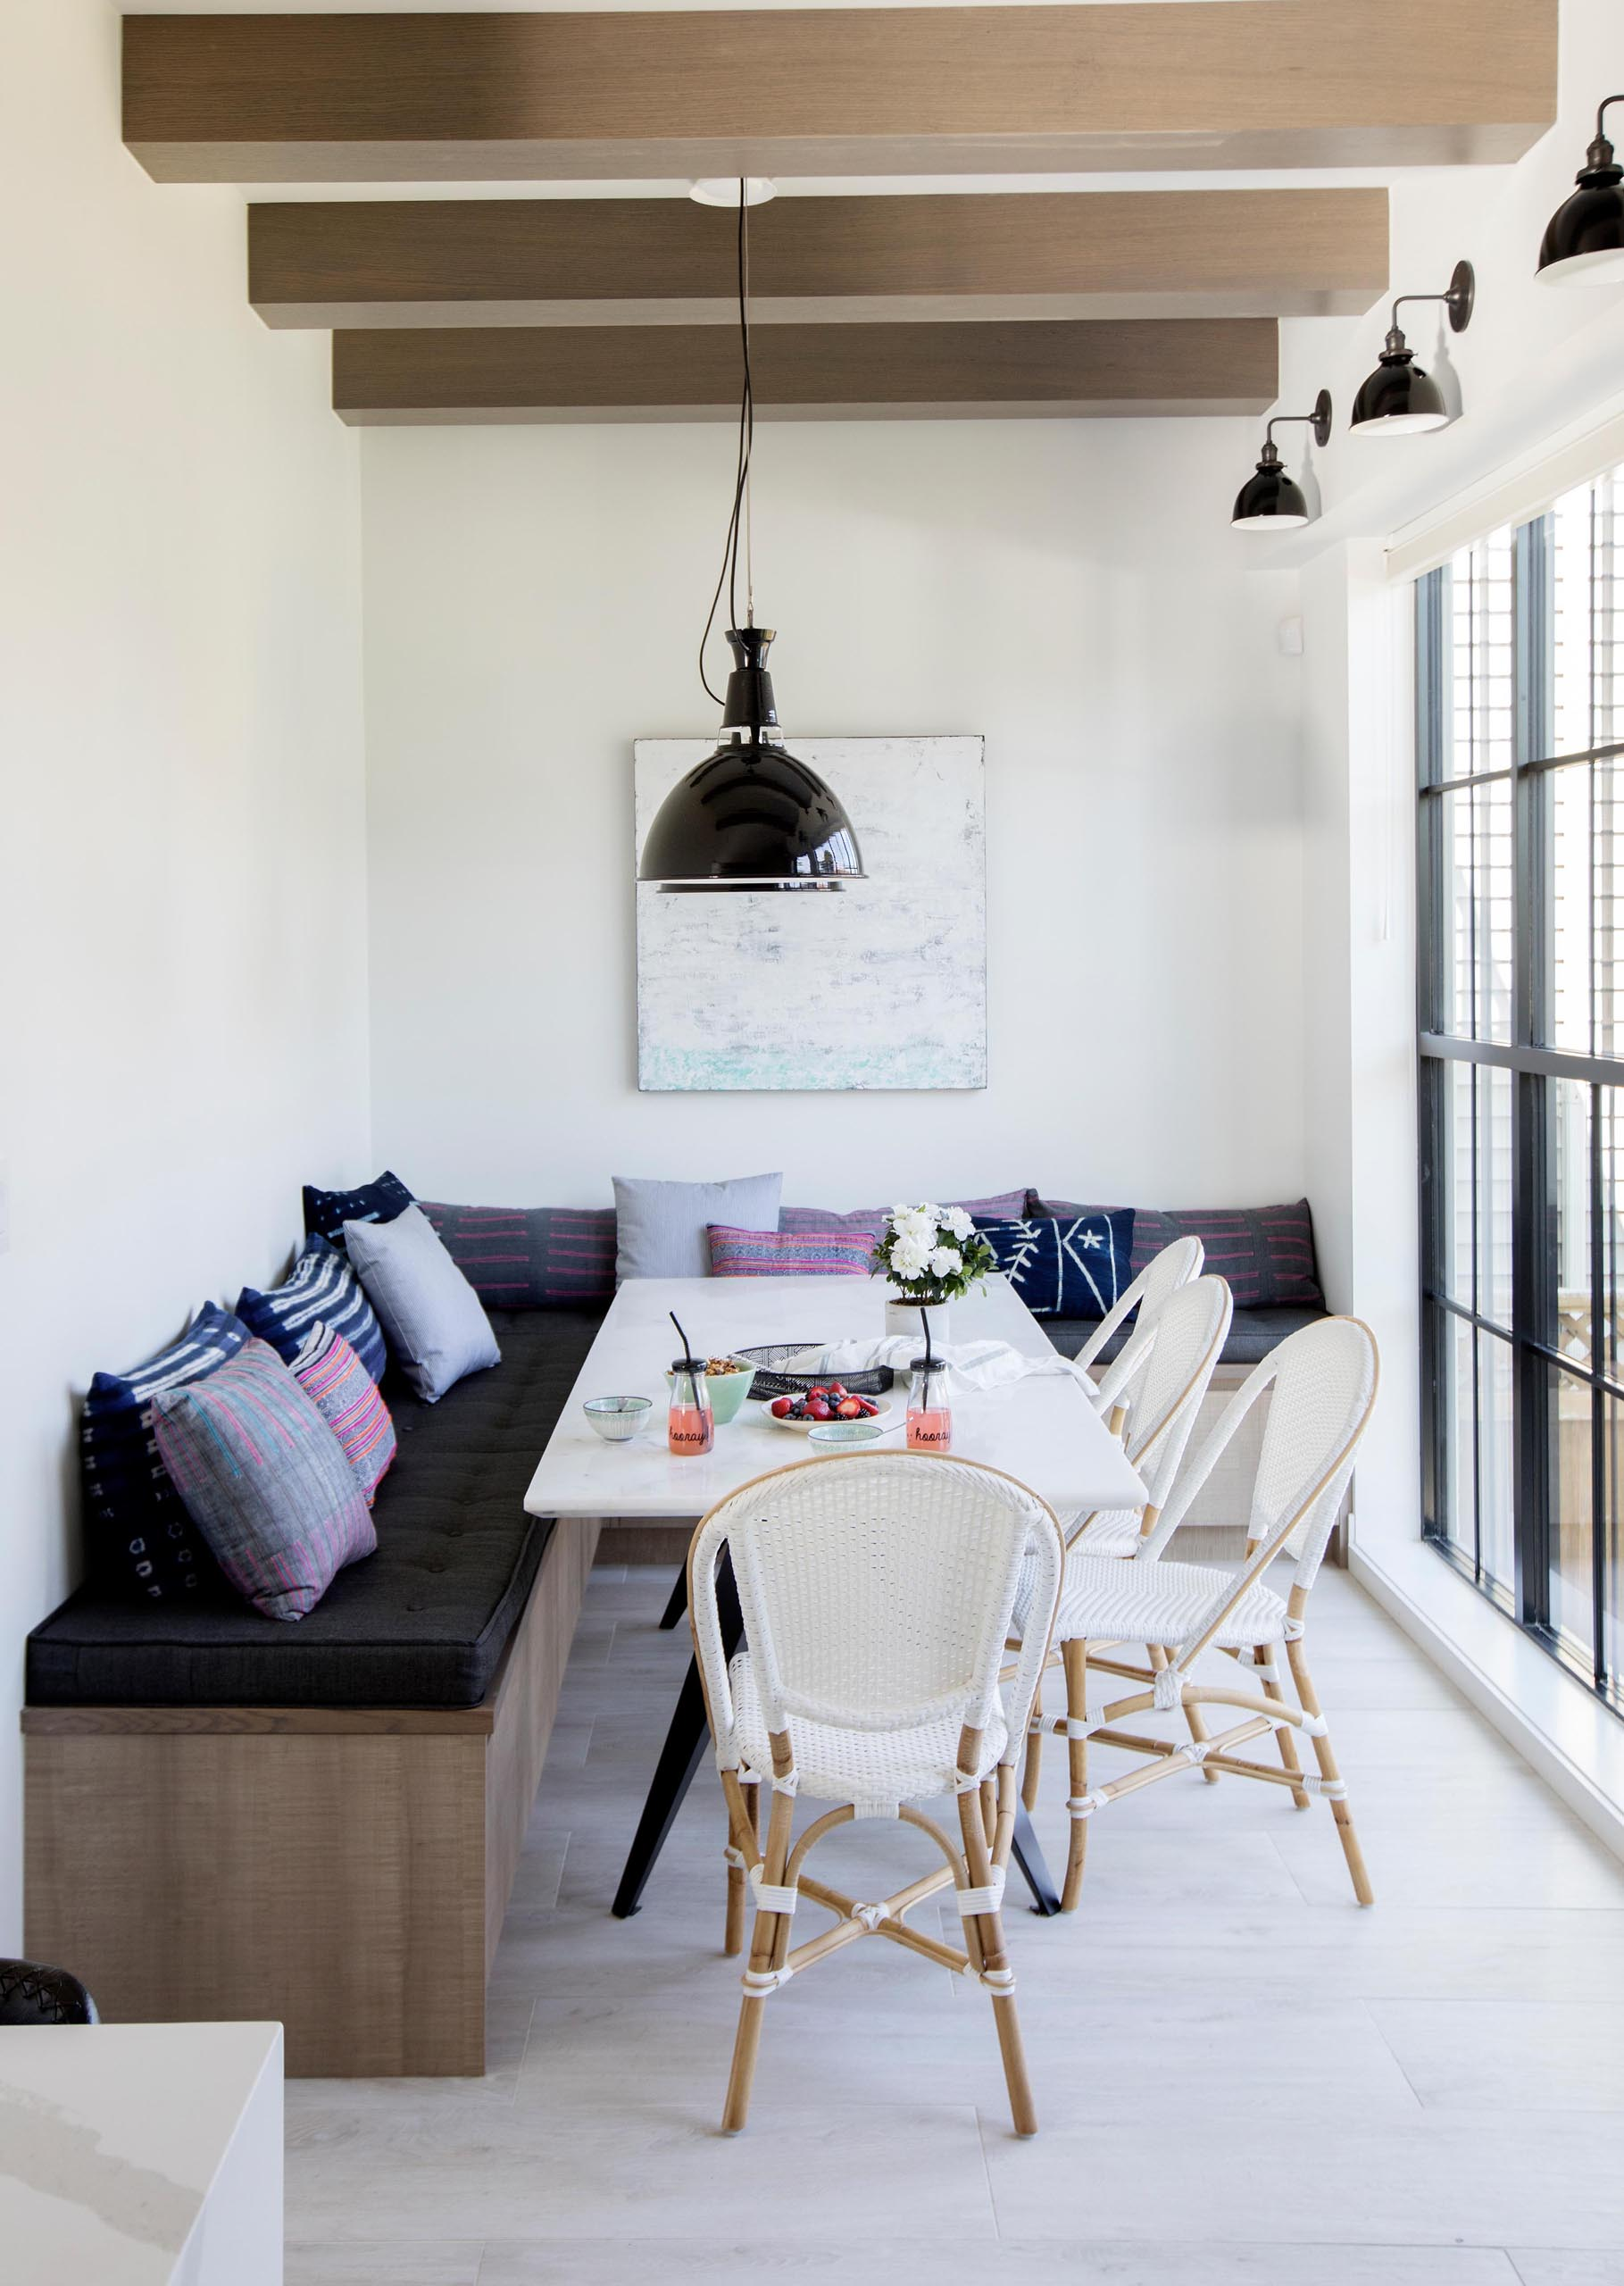 This casual dining area has been furnished with benches and pillows that wrap around the corner of the room.